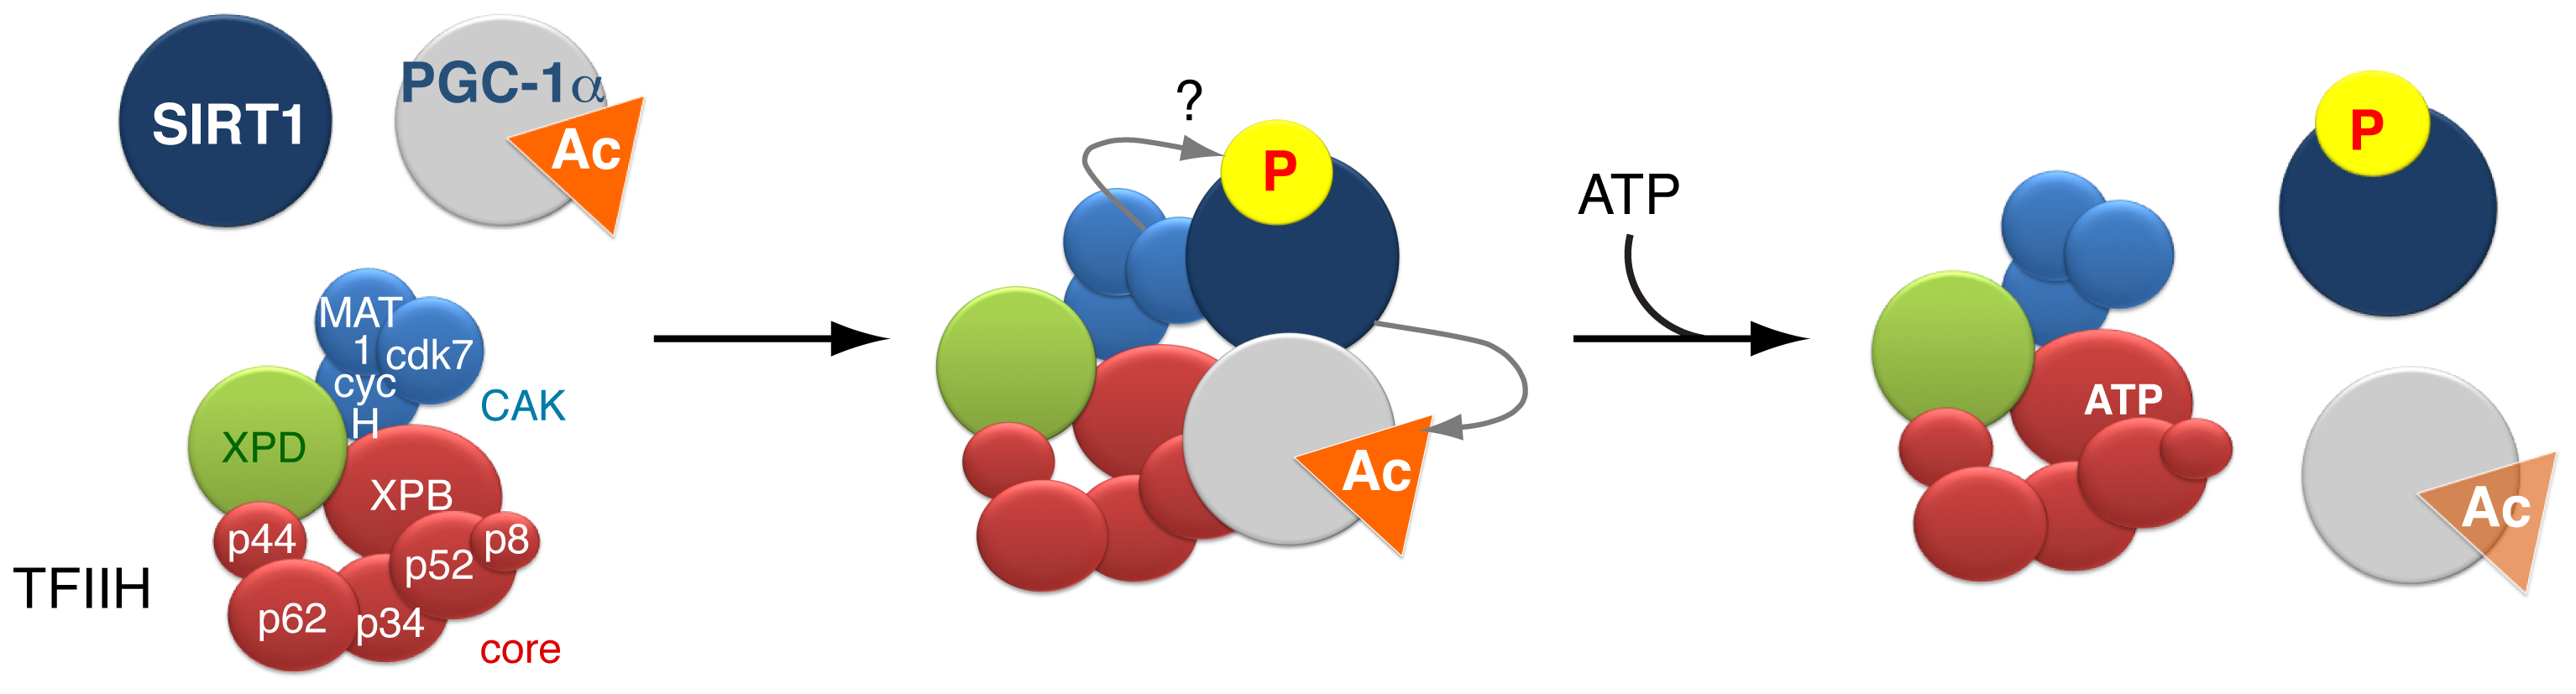 Model of the dynamic partnership between TFIIH, PGC-1α and SIRT1.